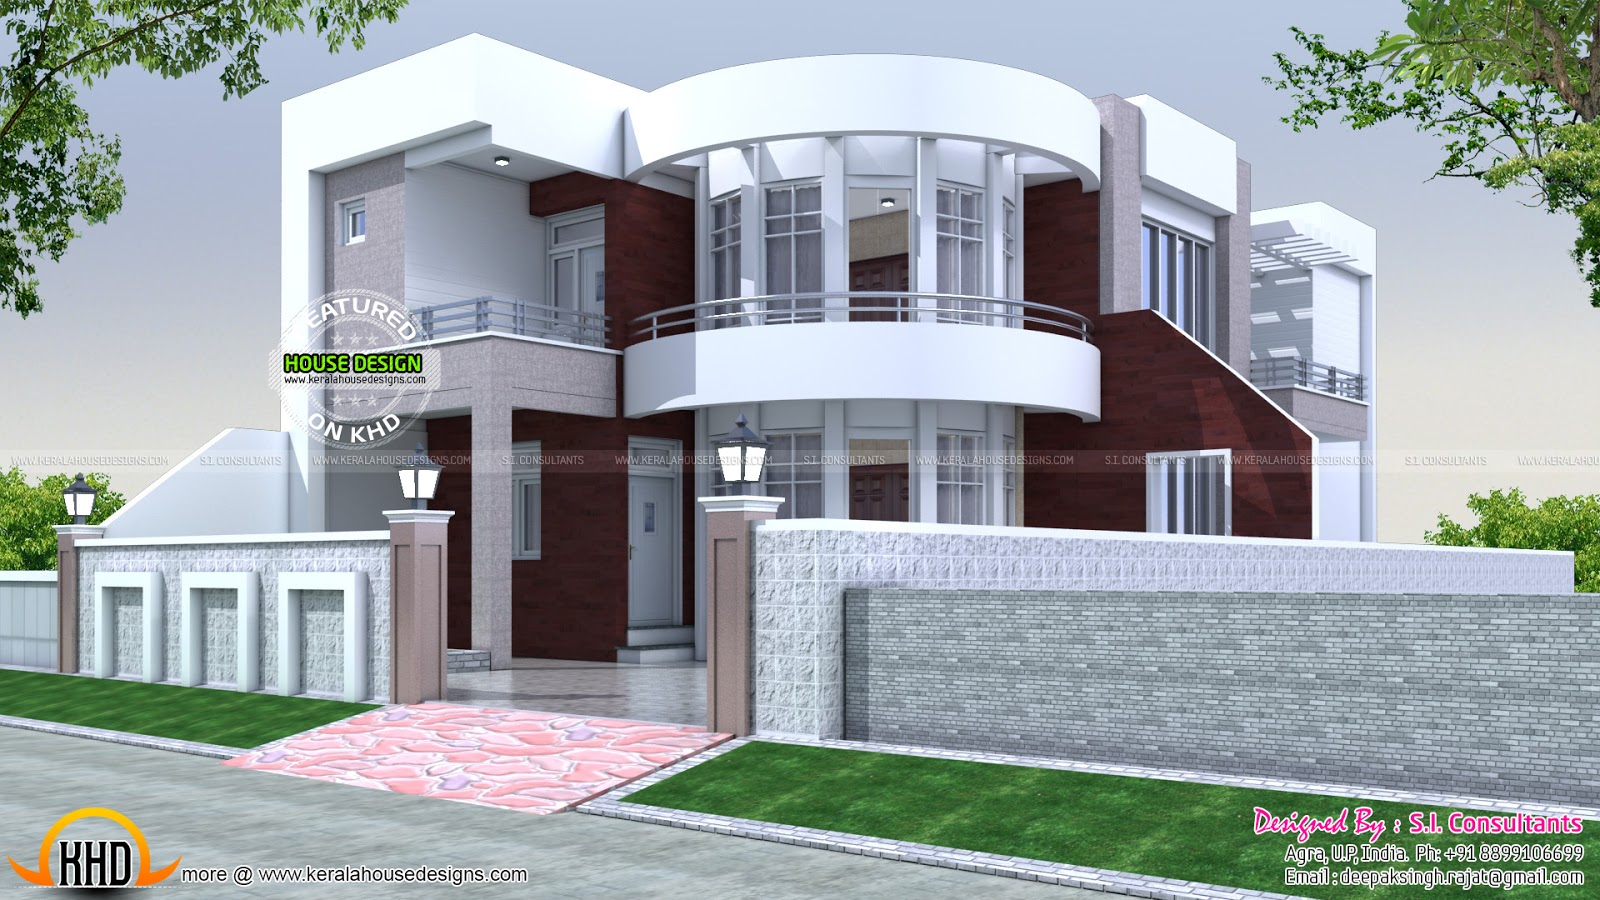 September 2015 kerala home design and floor plans Indian modern home design images